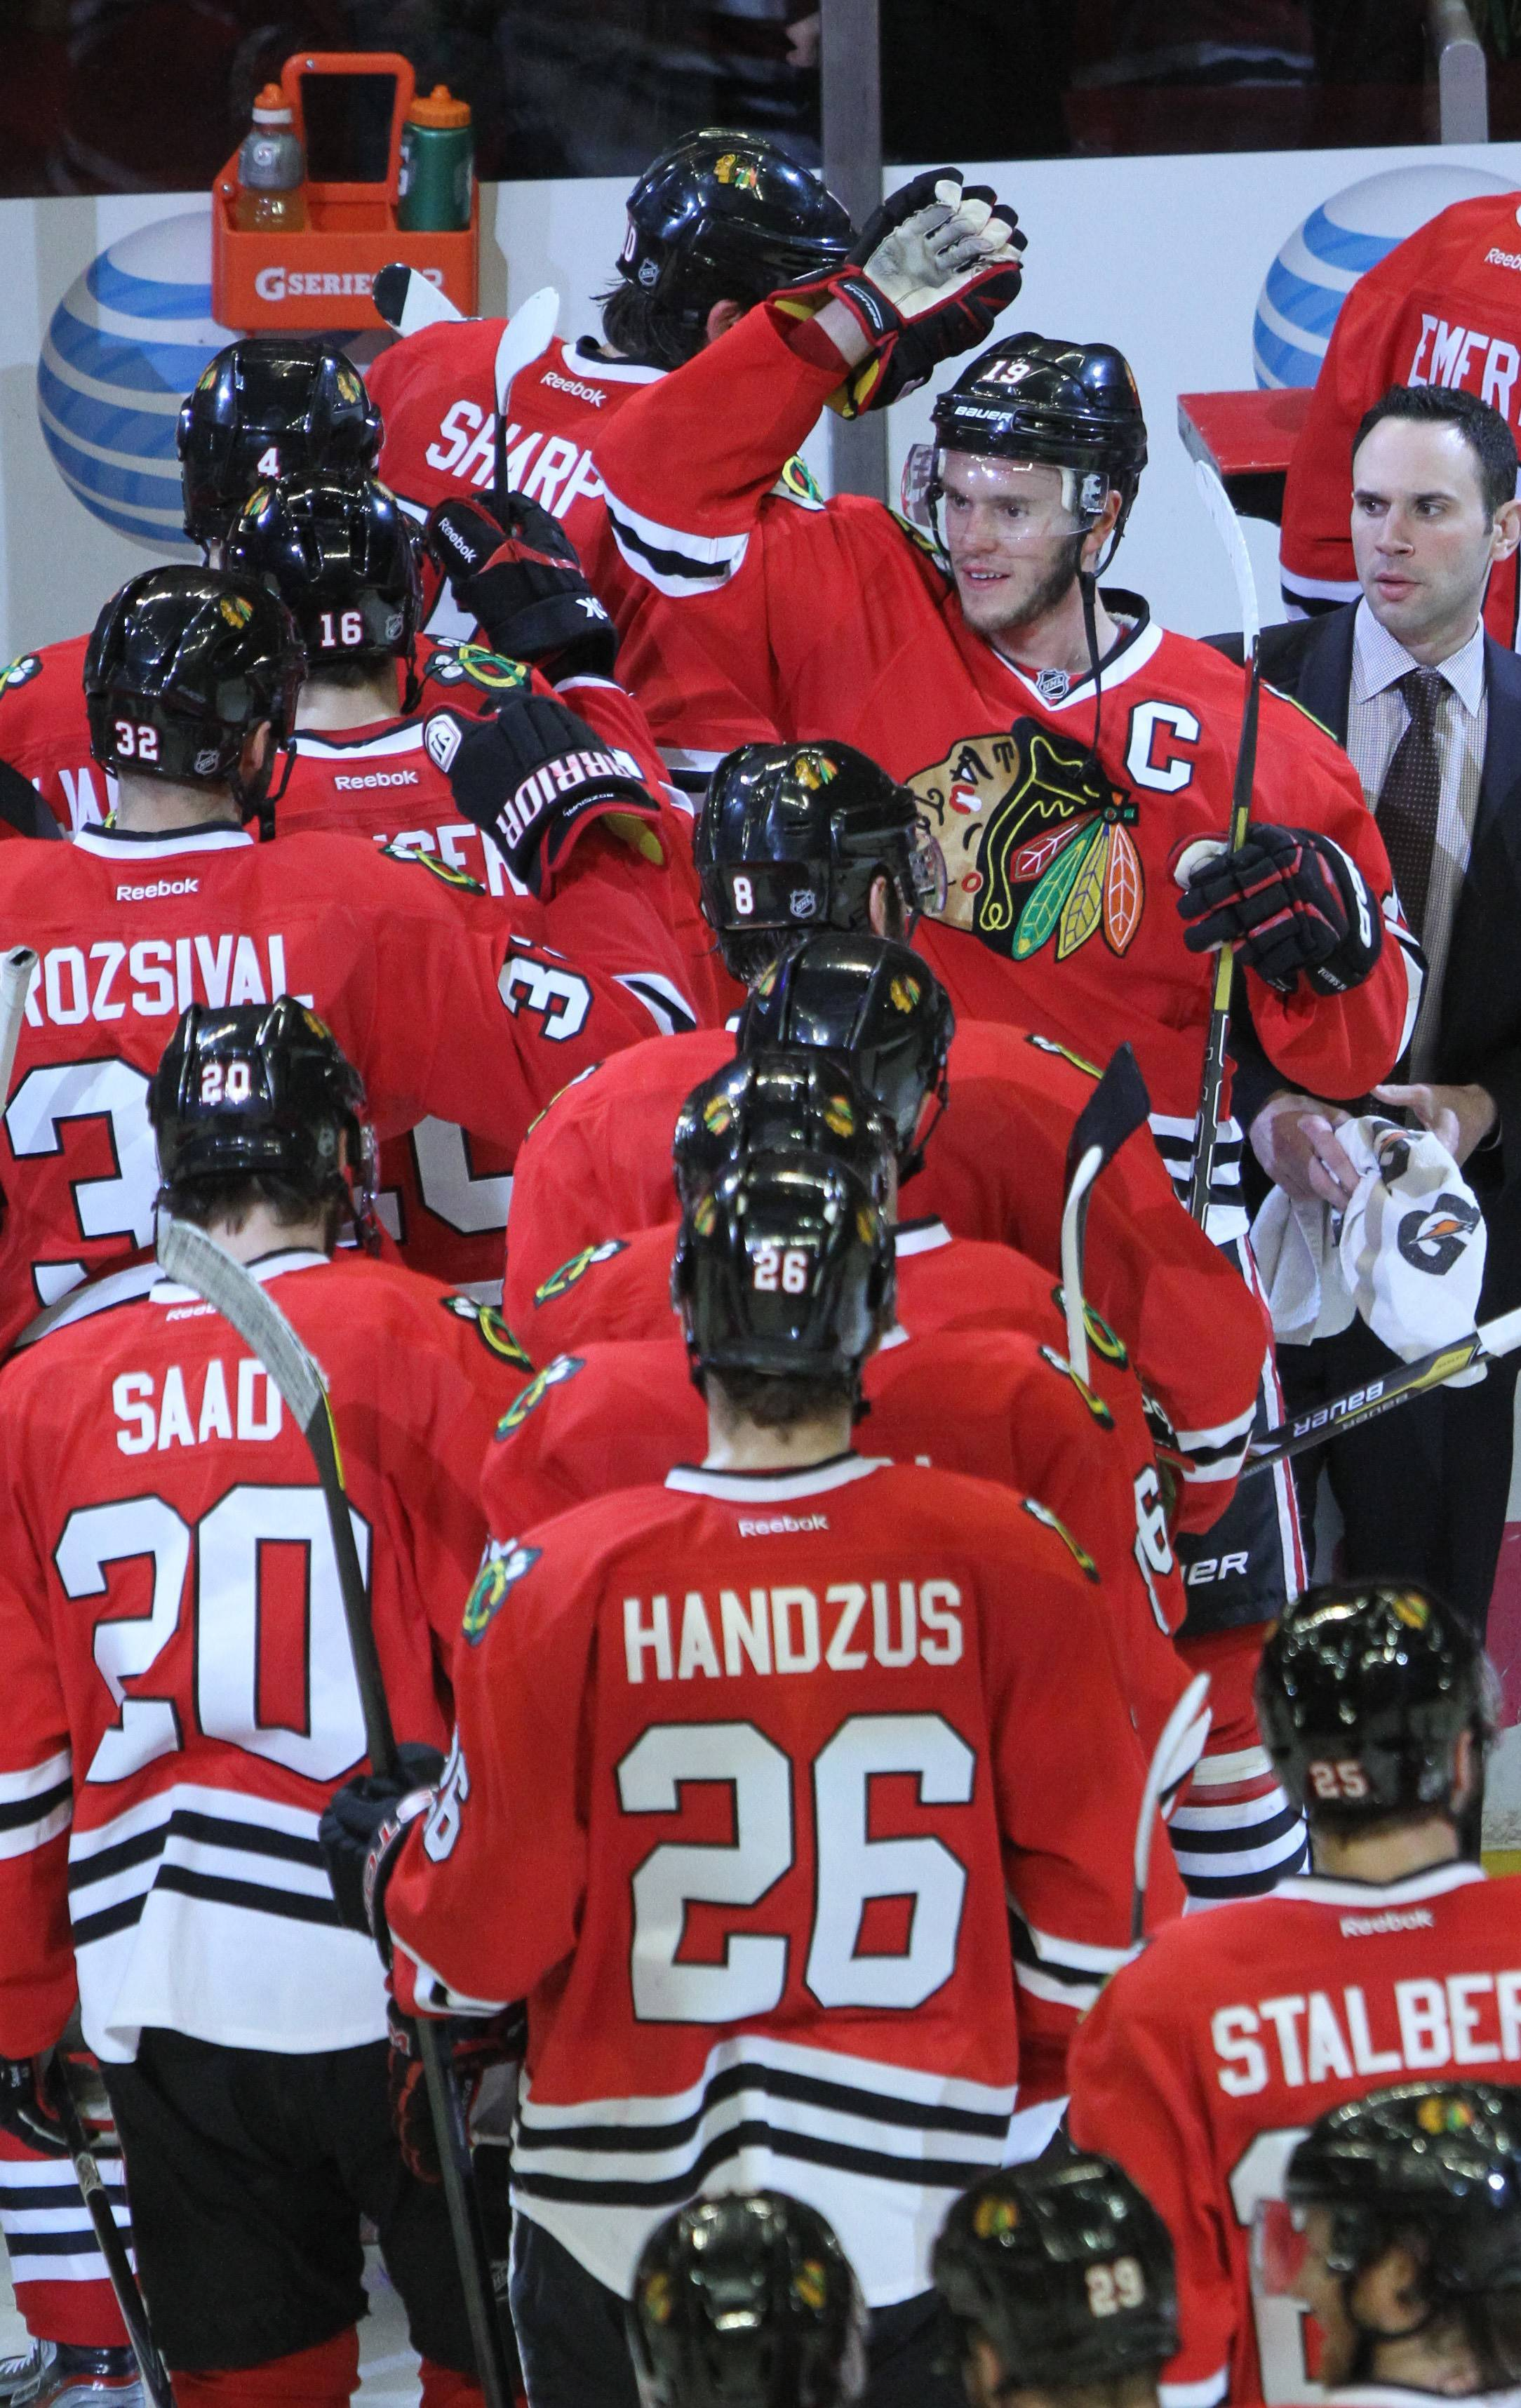 Blackhawks captain Jonathan Toews, top right, high-fives his teammates after their overtime win in Game 7 of the NHL Western Conference semifinals against Detroit. The Hawks are hoping to re-sign some of their free agents for next season.